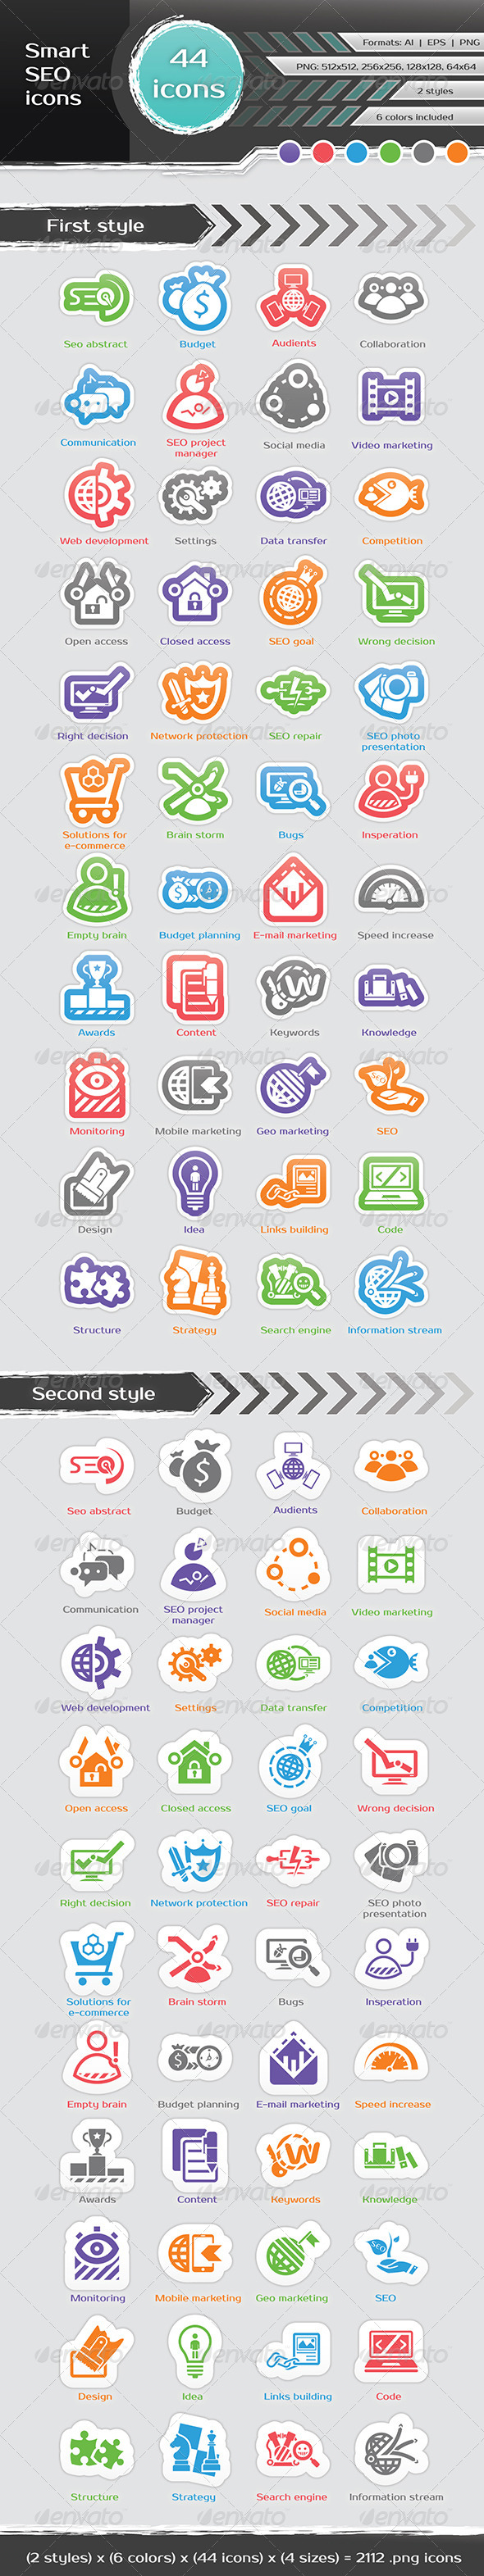 GraphicRiver Smart SEO Icons 6370809